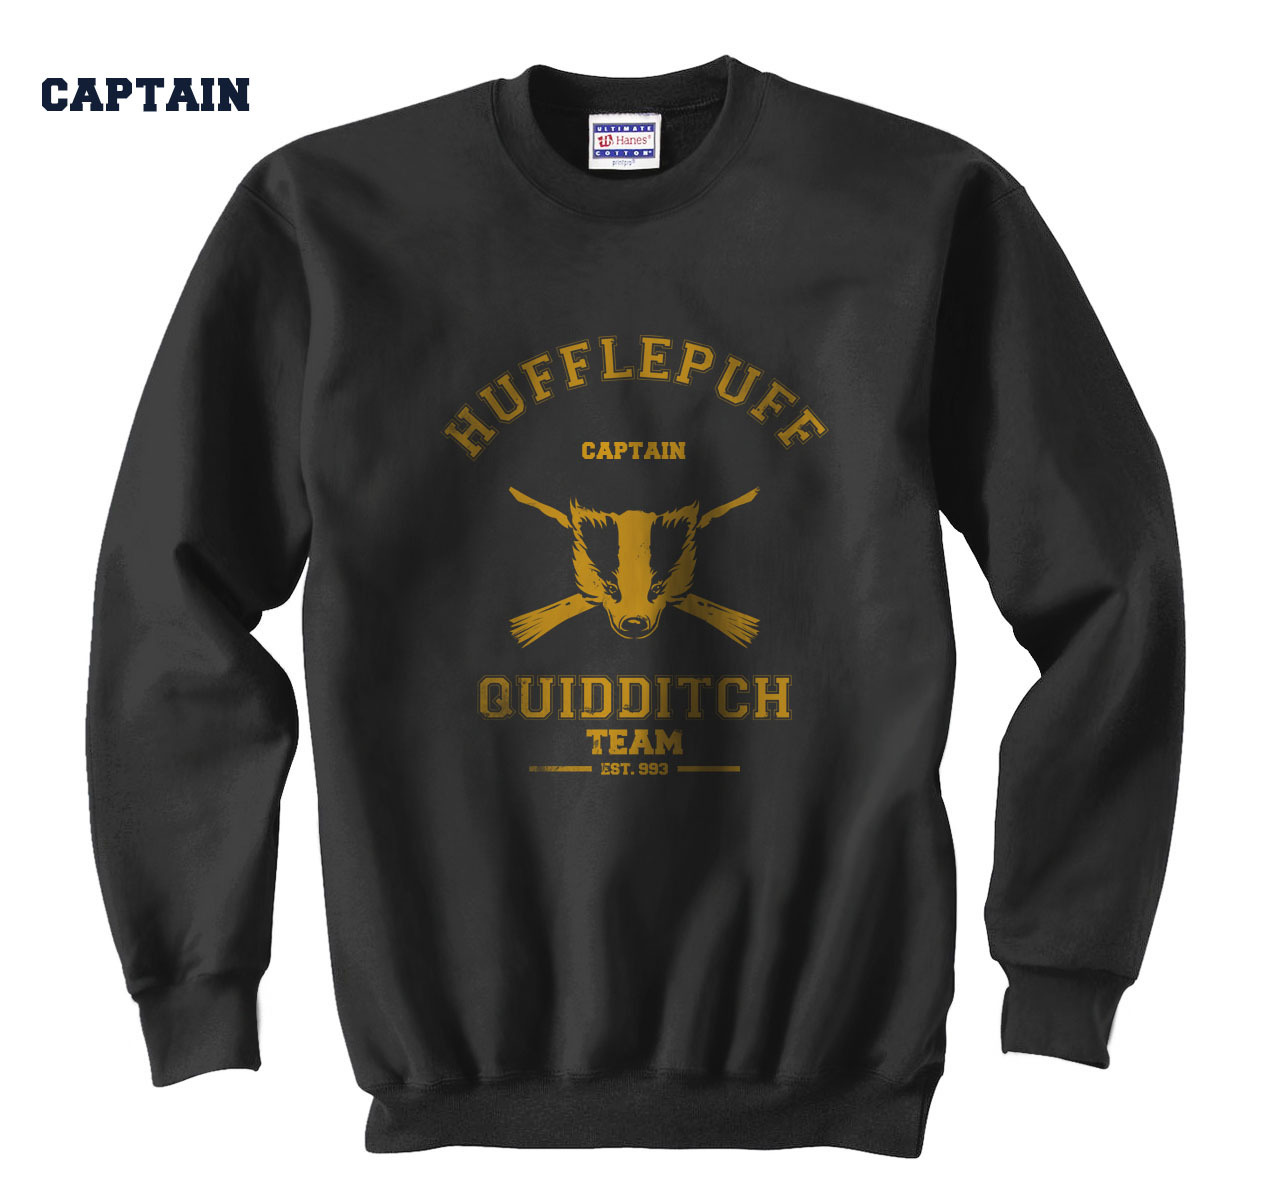 Hufflepuf captain sewat black  2